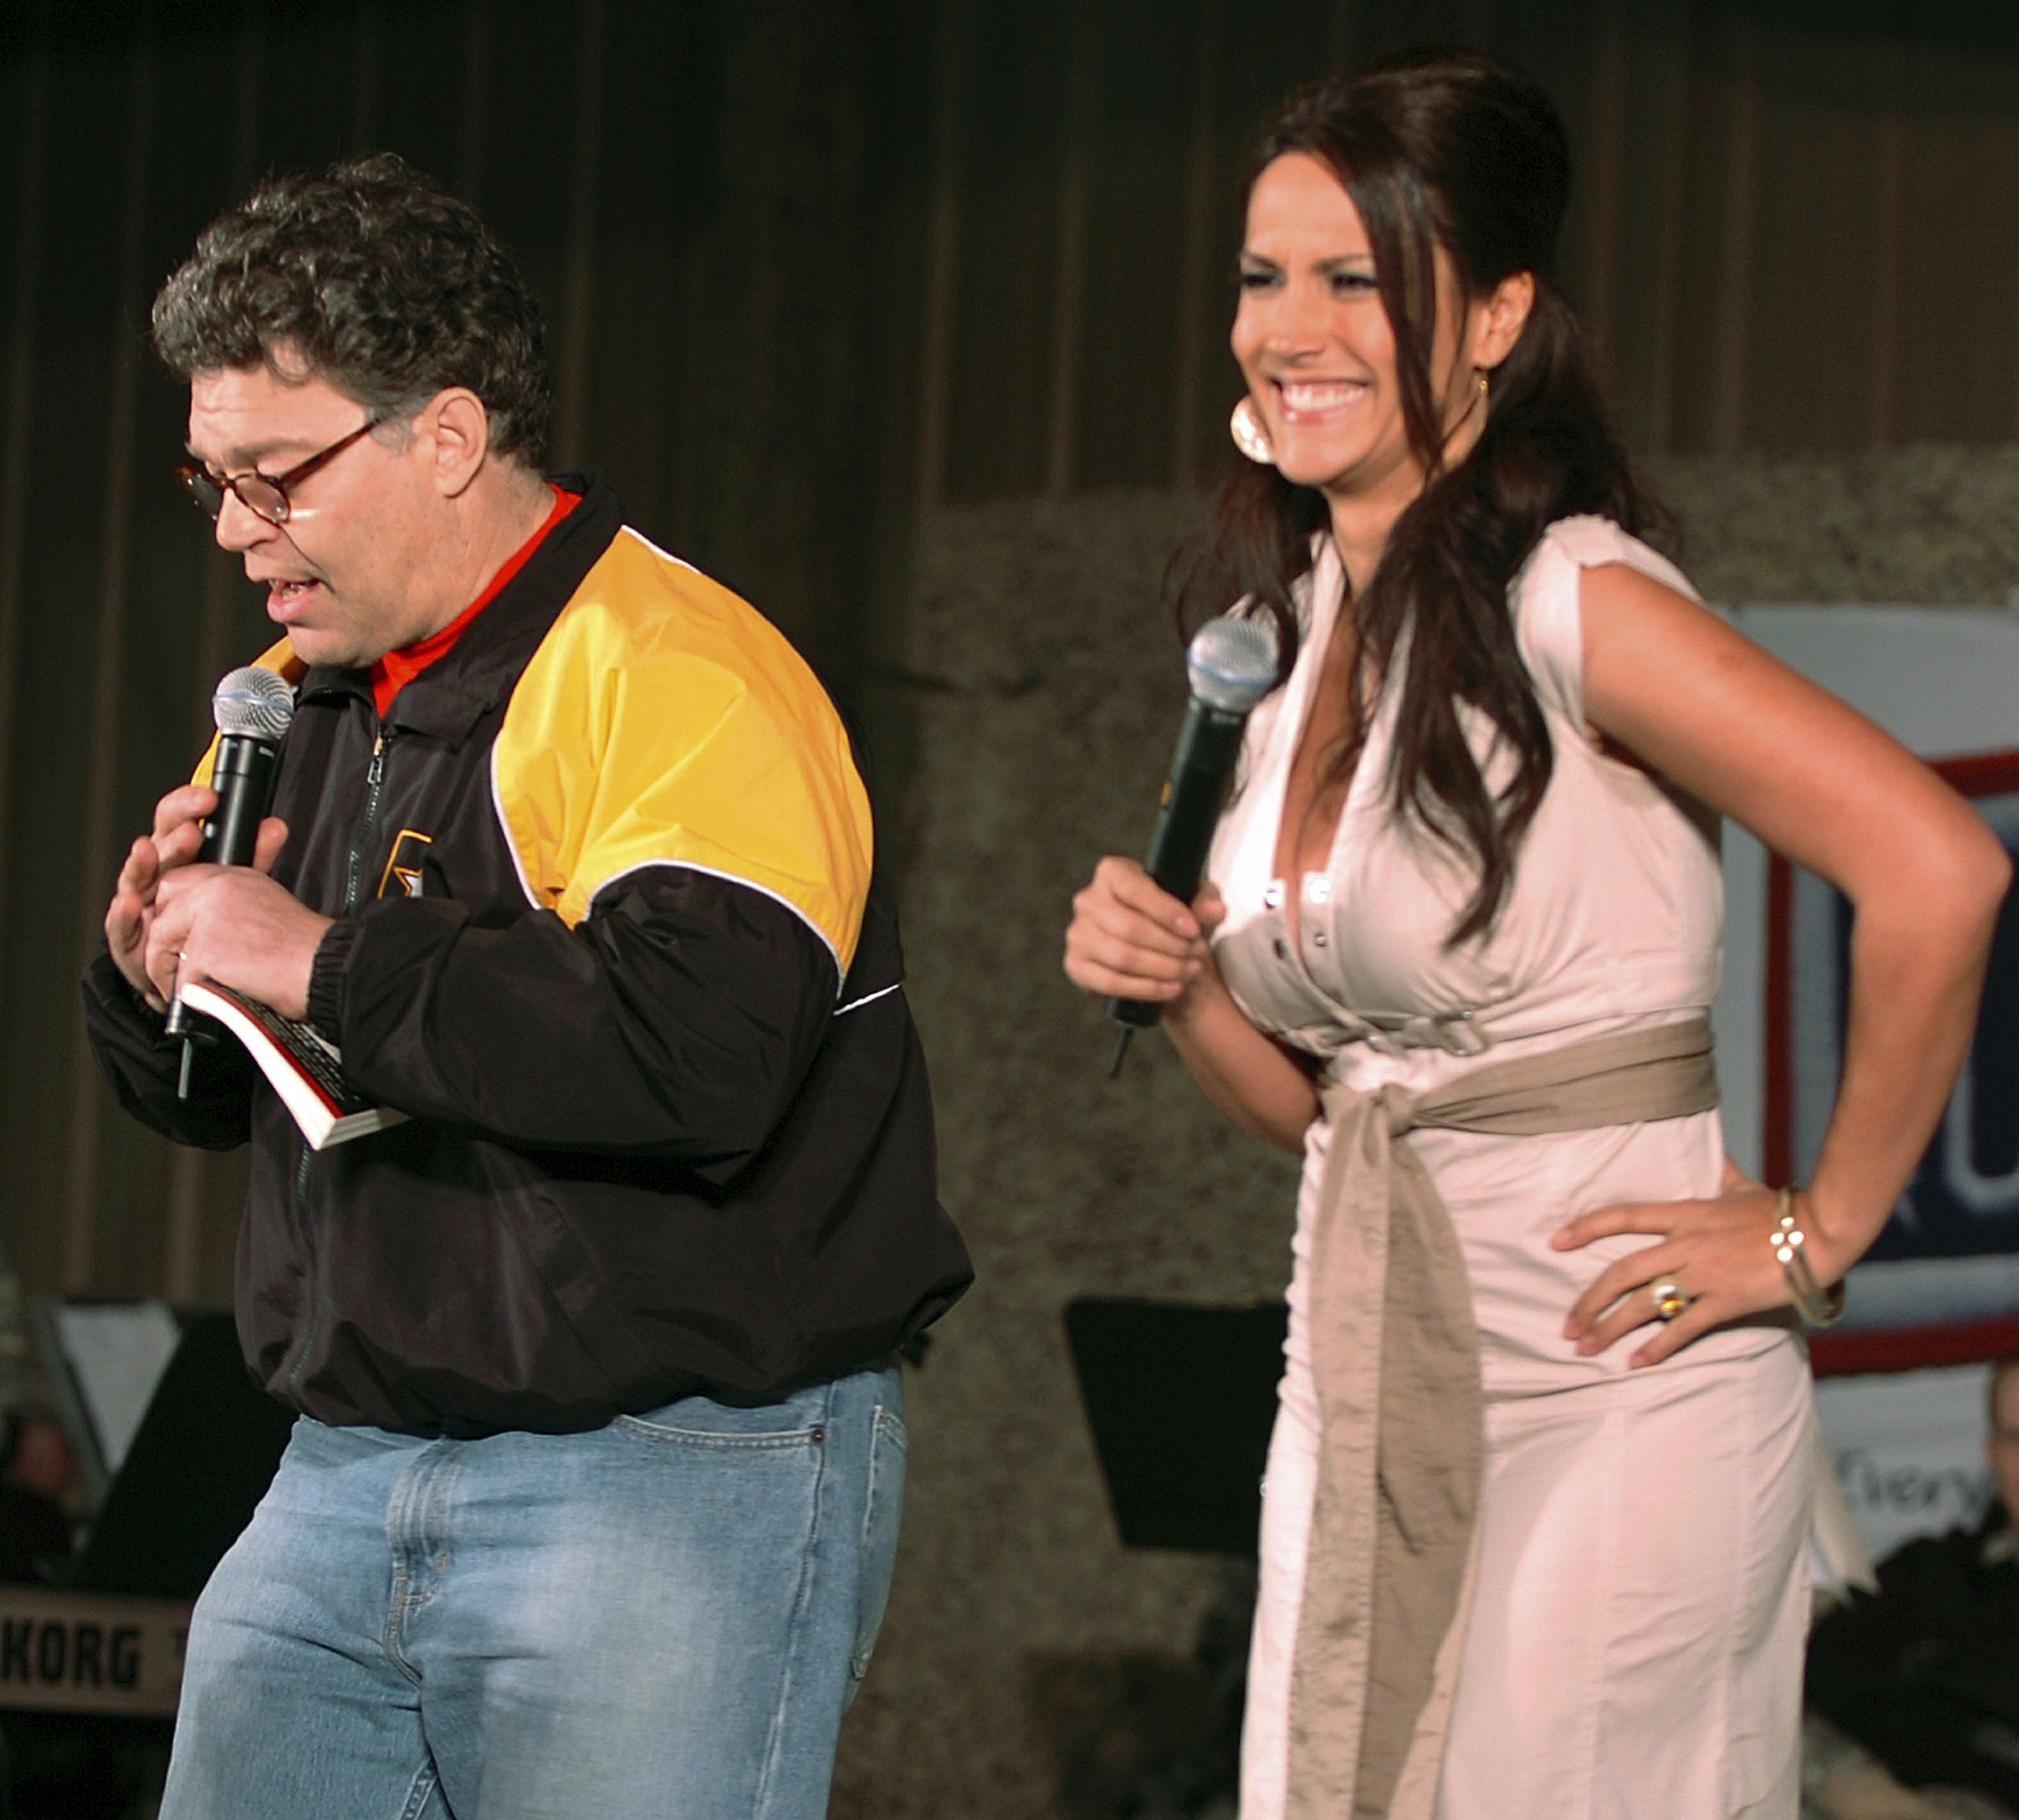 Franken faces ethics probe after woman says he groped her